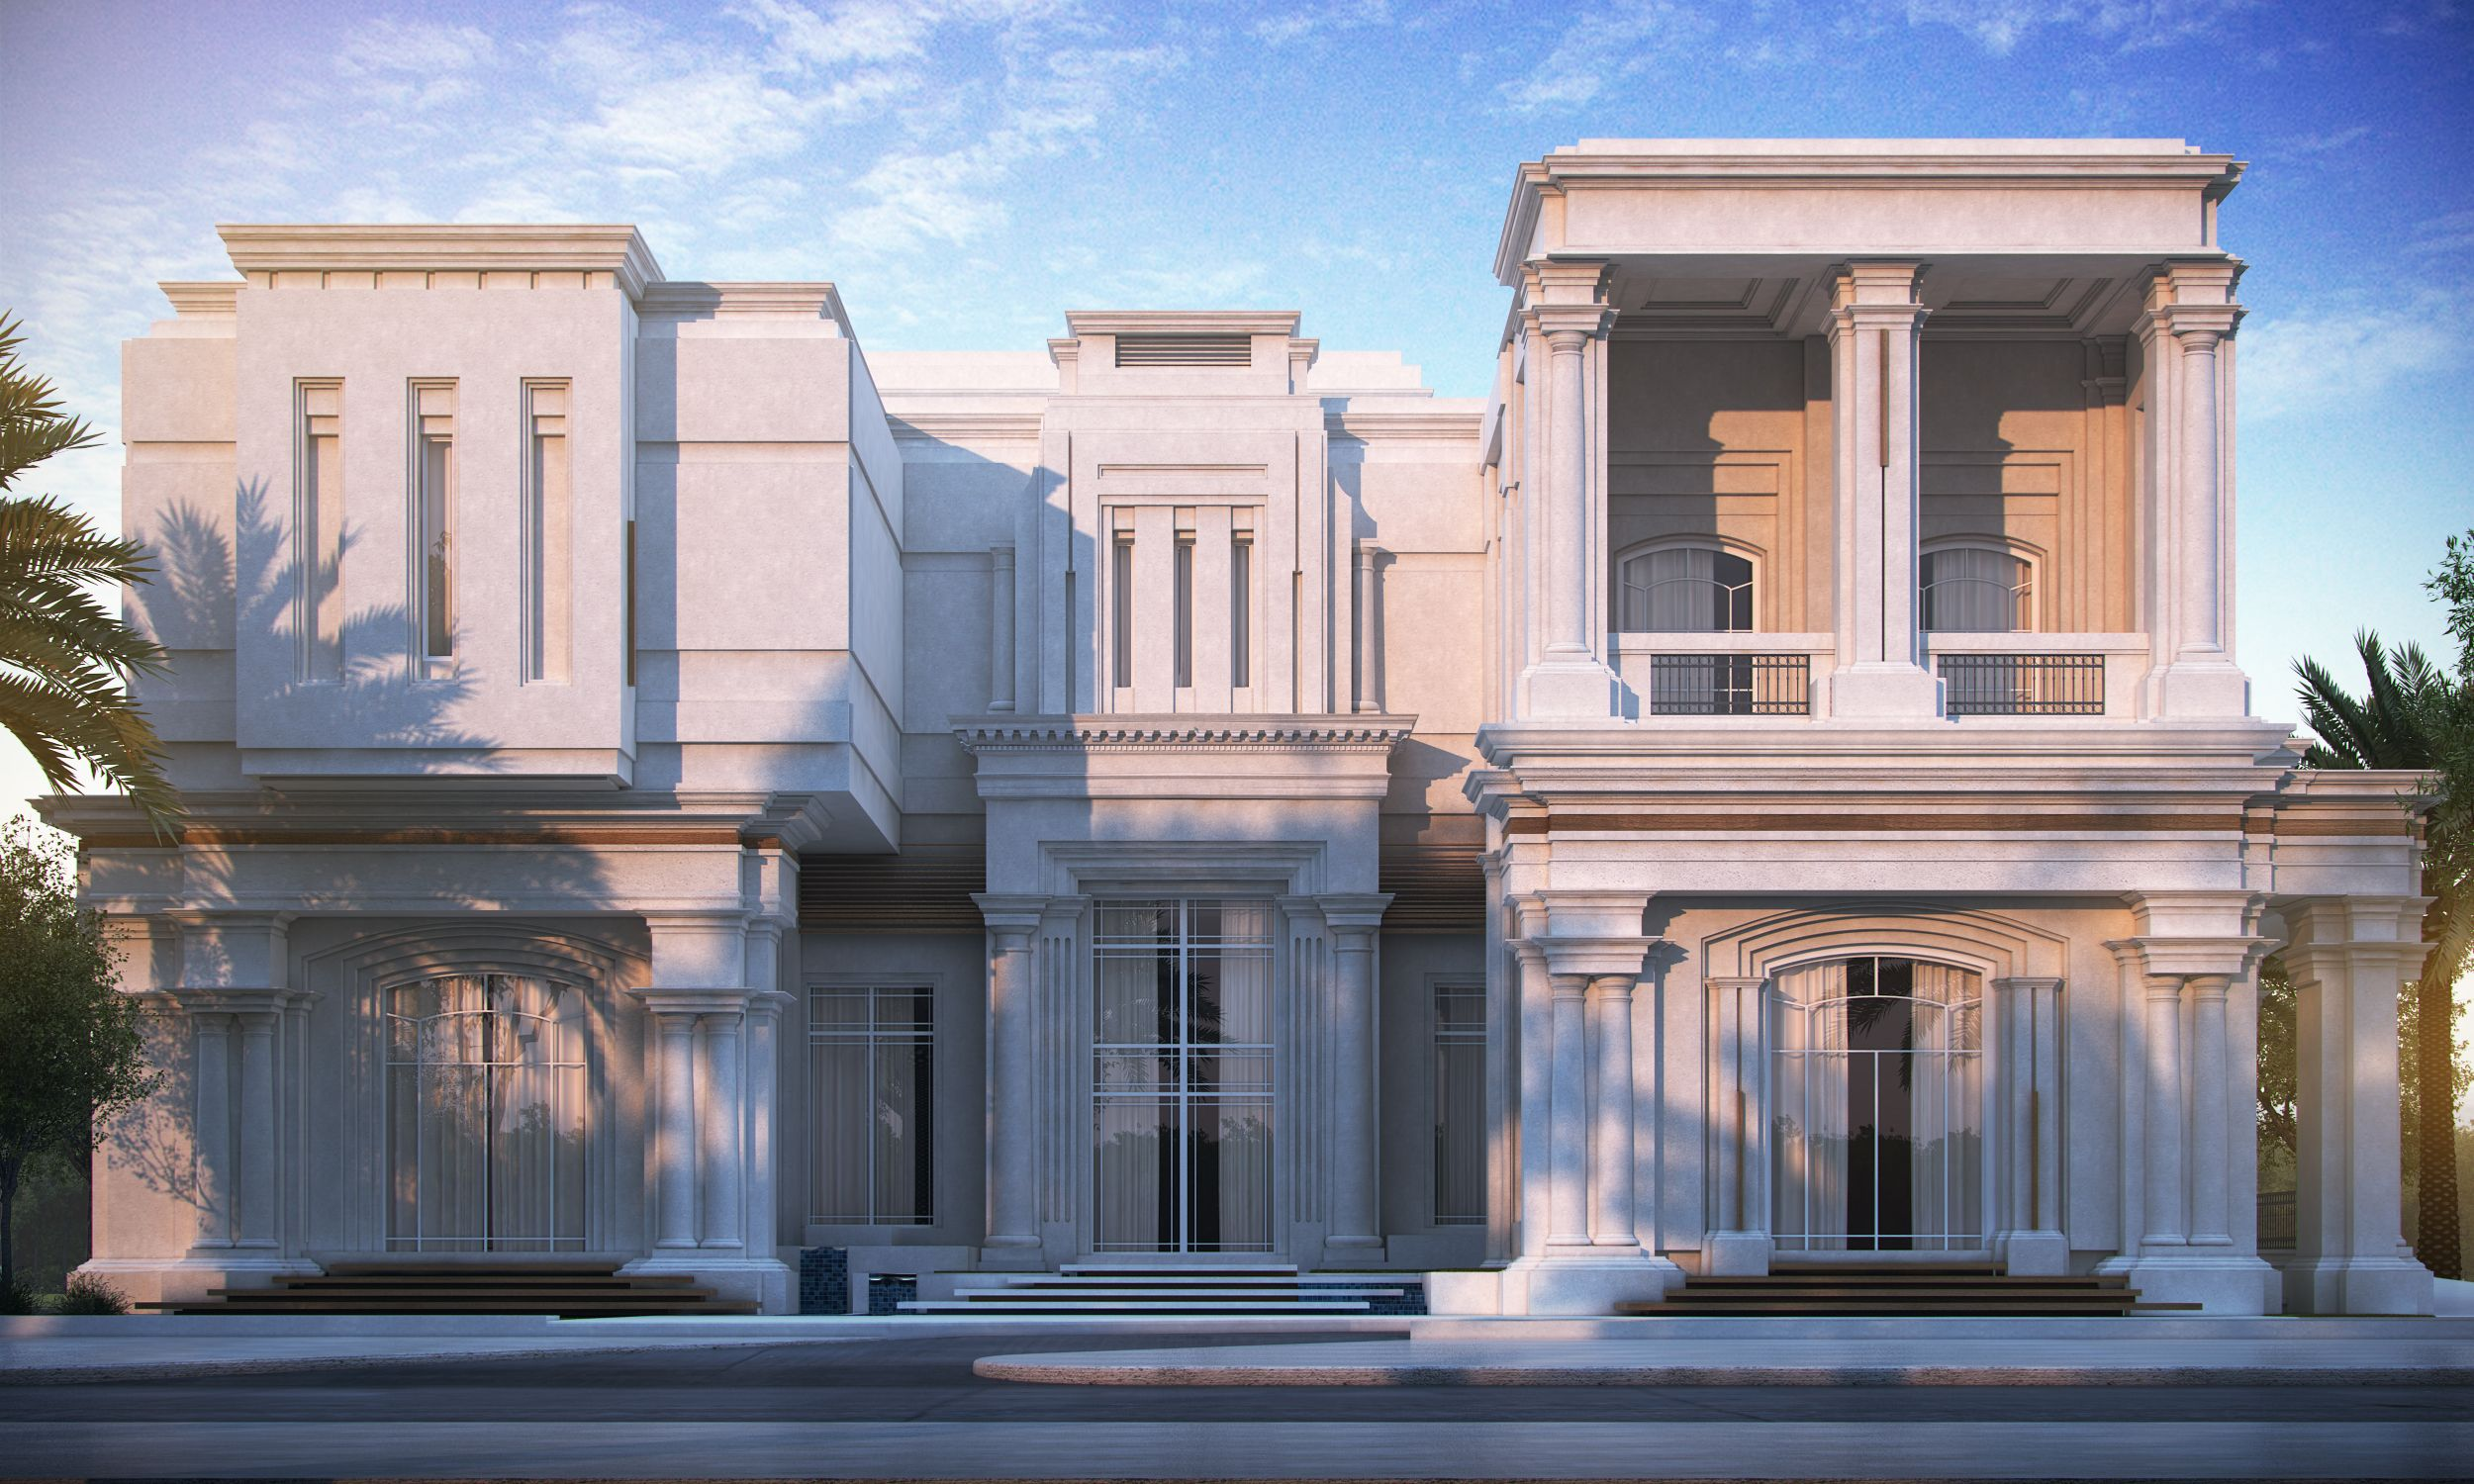 Architecture Design Unit Dubai uae dubai , 2000 m private villasarah sadeq architects | sarah